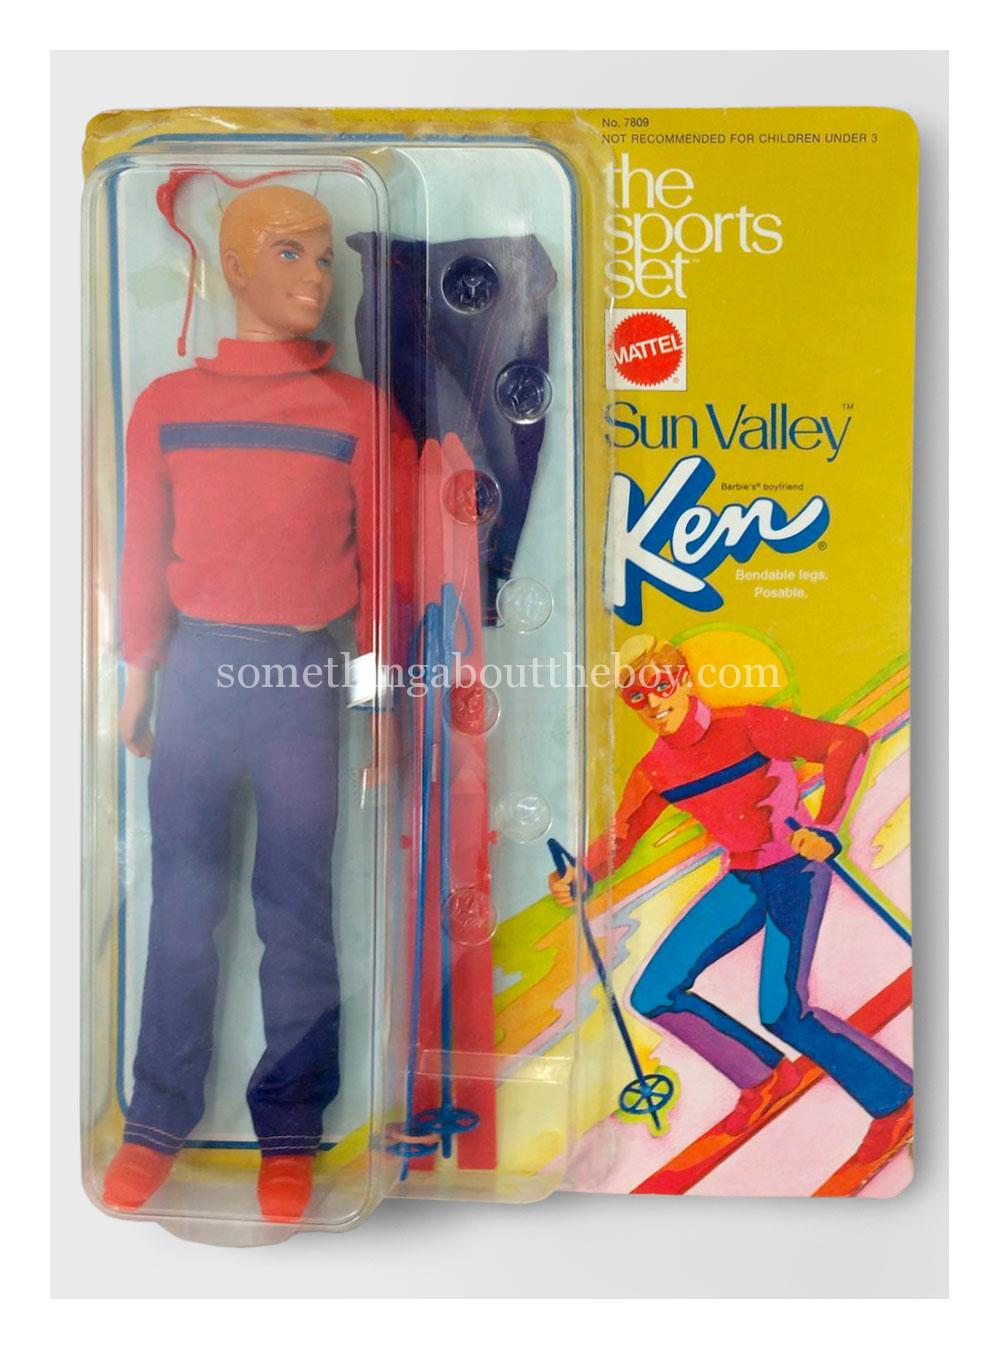 1974 #7809 The Sports Set Sun Valley Ken variation